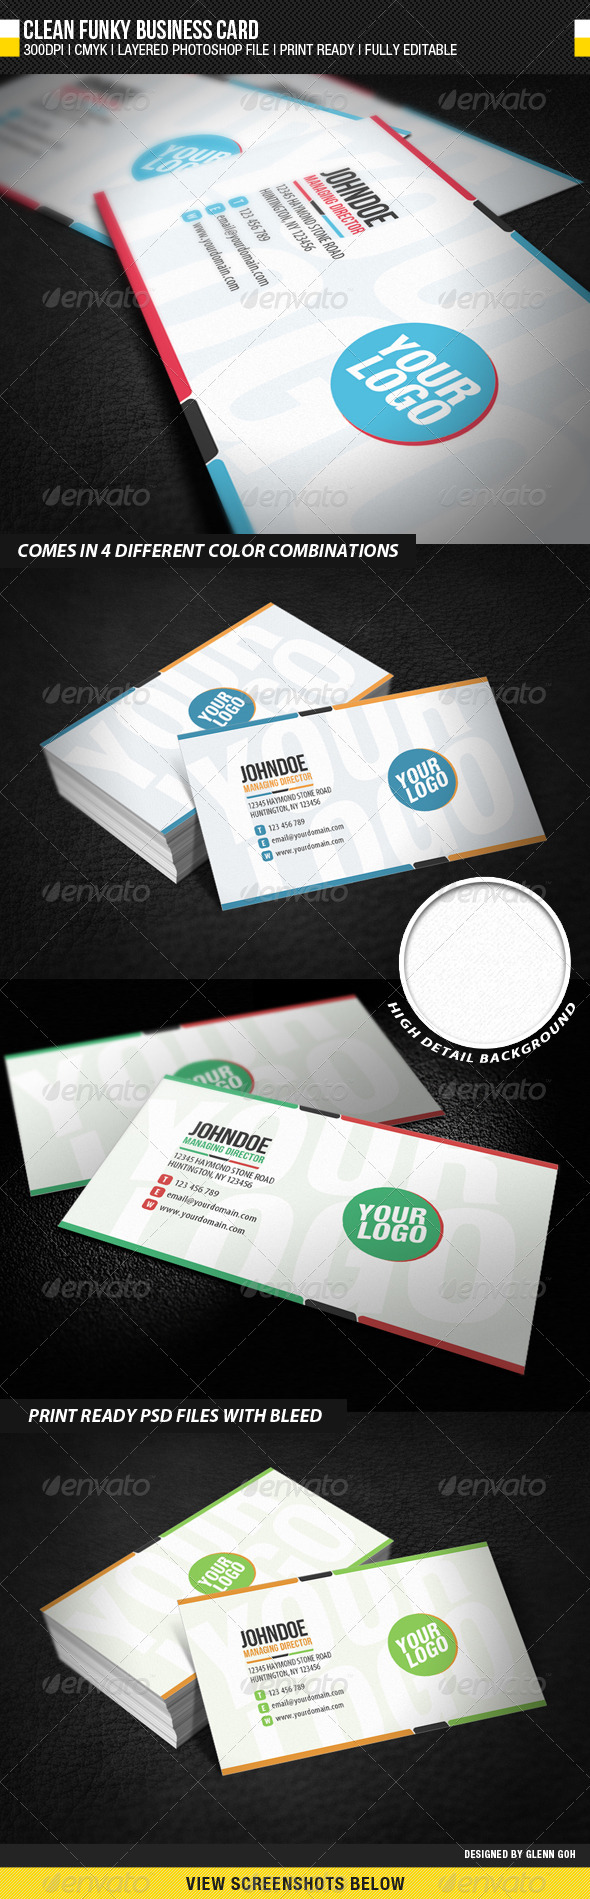 GraphicRiver Clean Funky Business Card 1733395